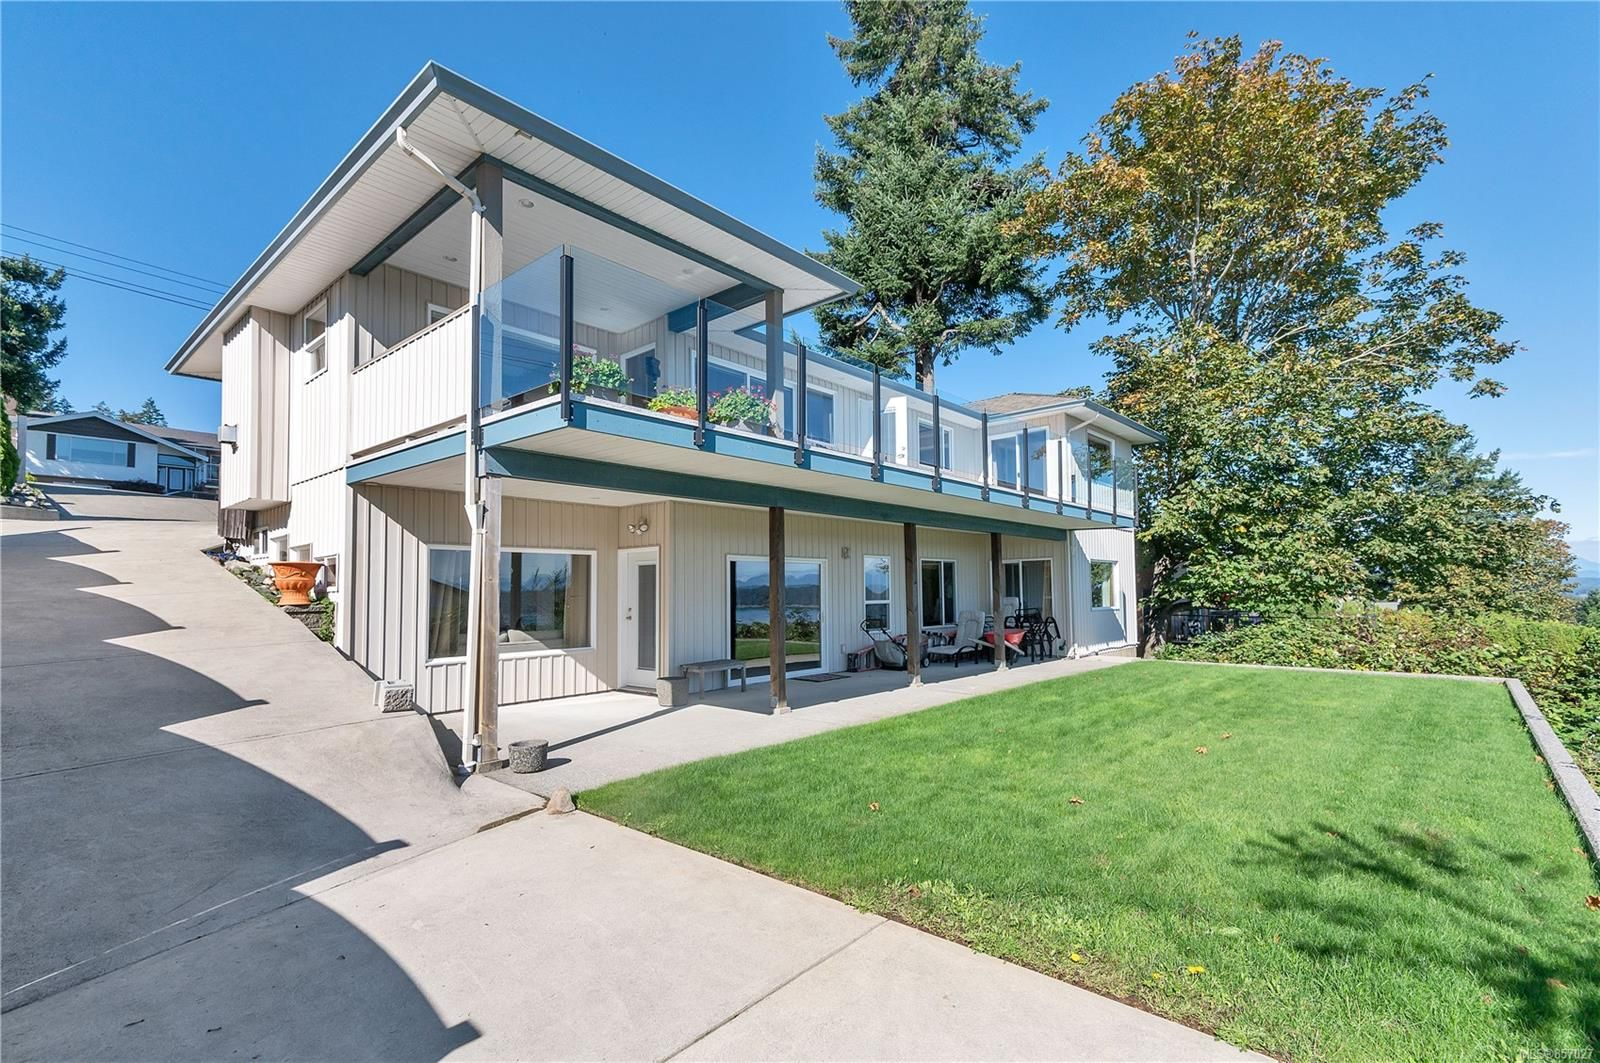 Photo 3: Photos: 253 S Alder St in : CR Campbell River South House for sale (Campbell River)  : MLS®# 857027